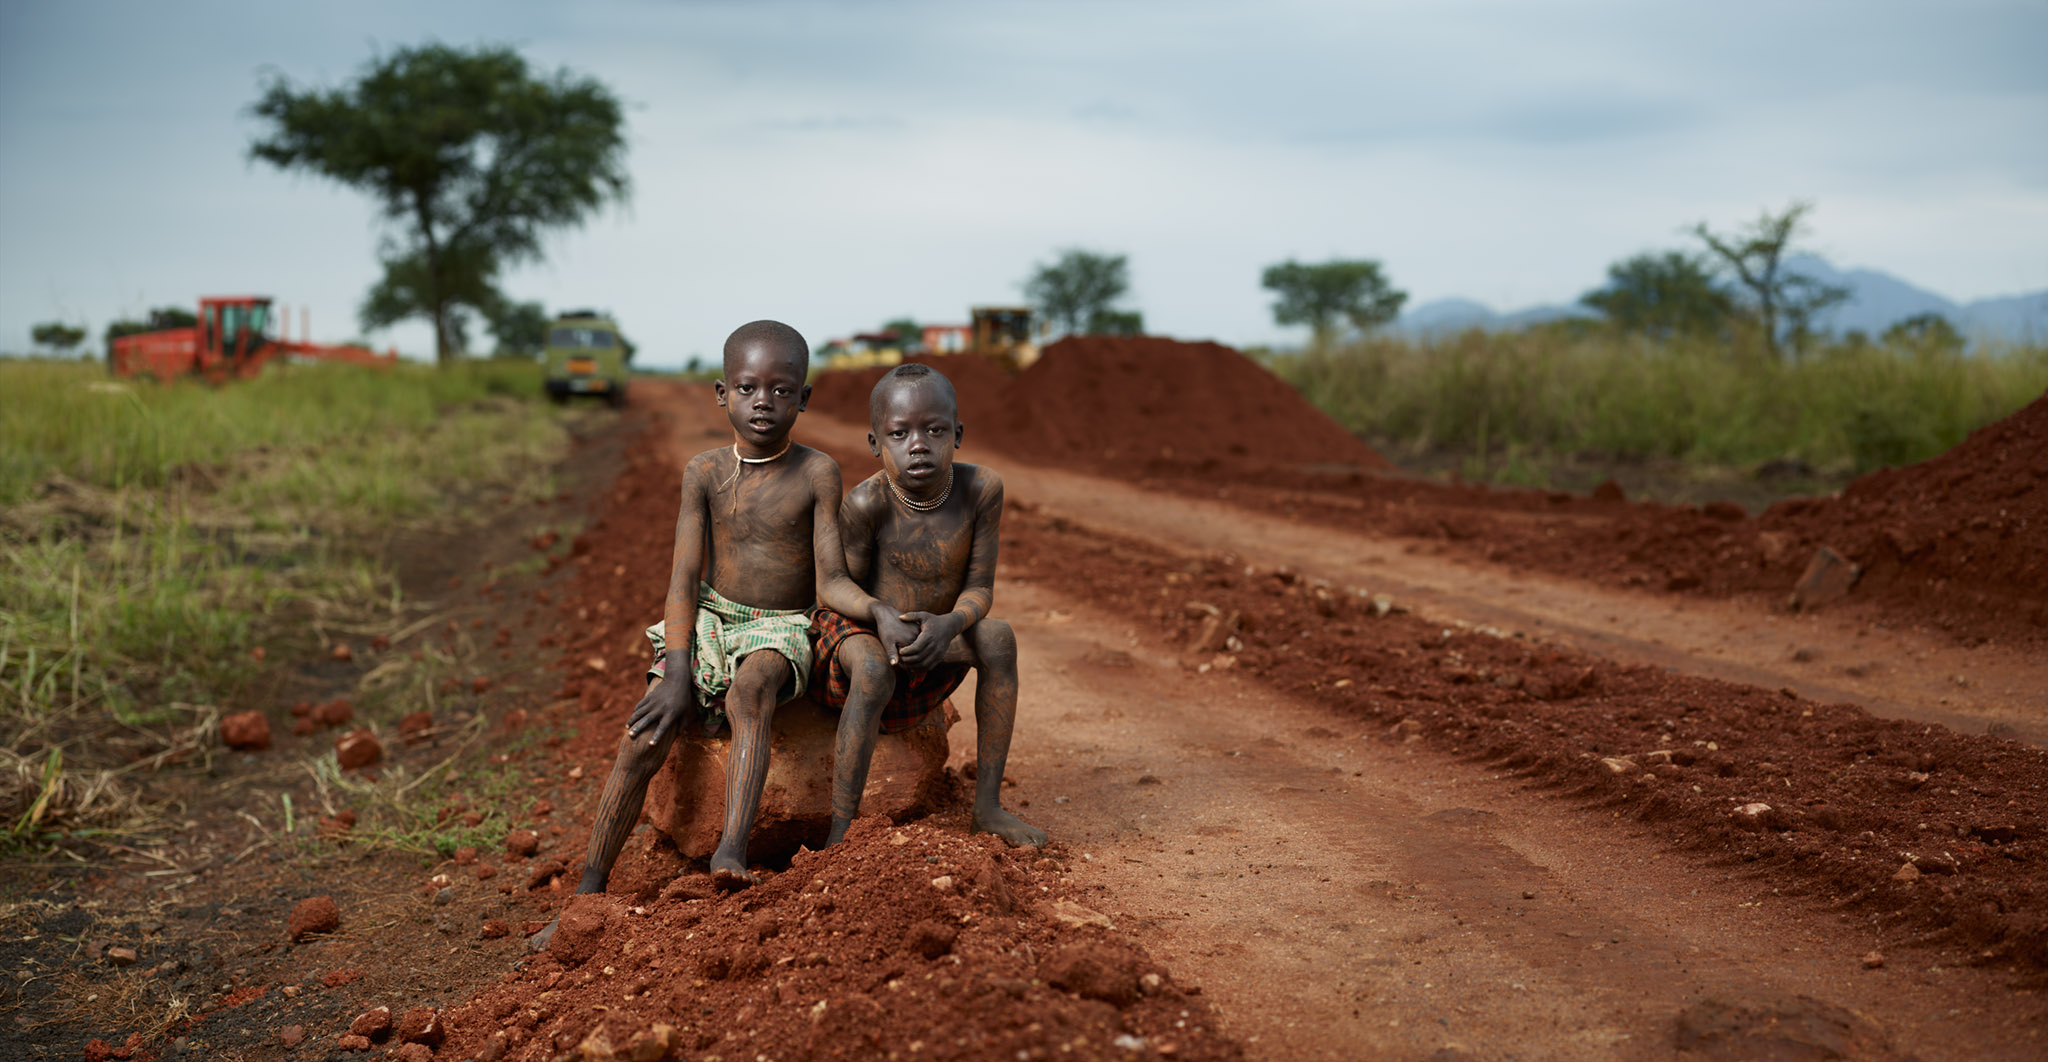 Ganggang and Arbodgi with road construction. Bodi Me'en Tribe, Lower Omo Valley, Ethiopia